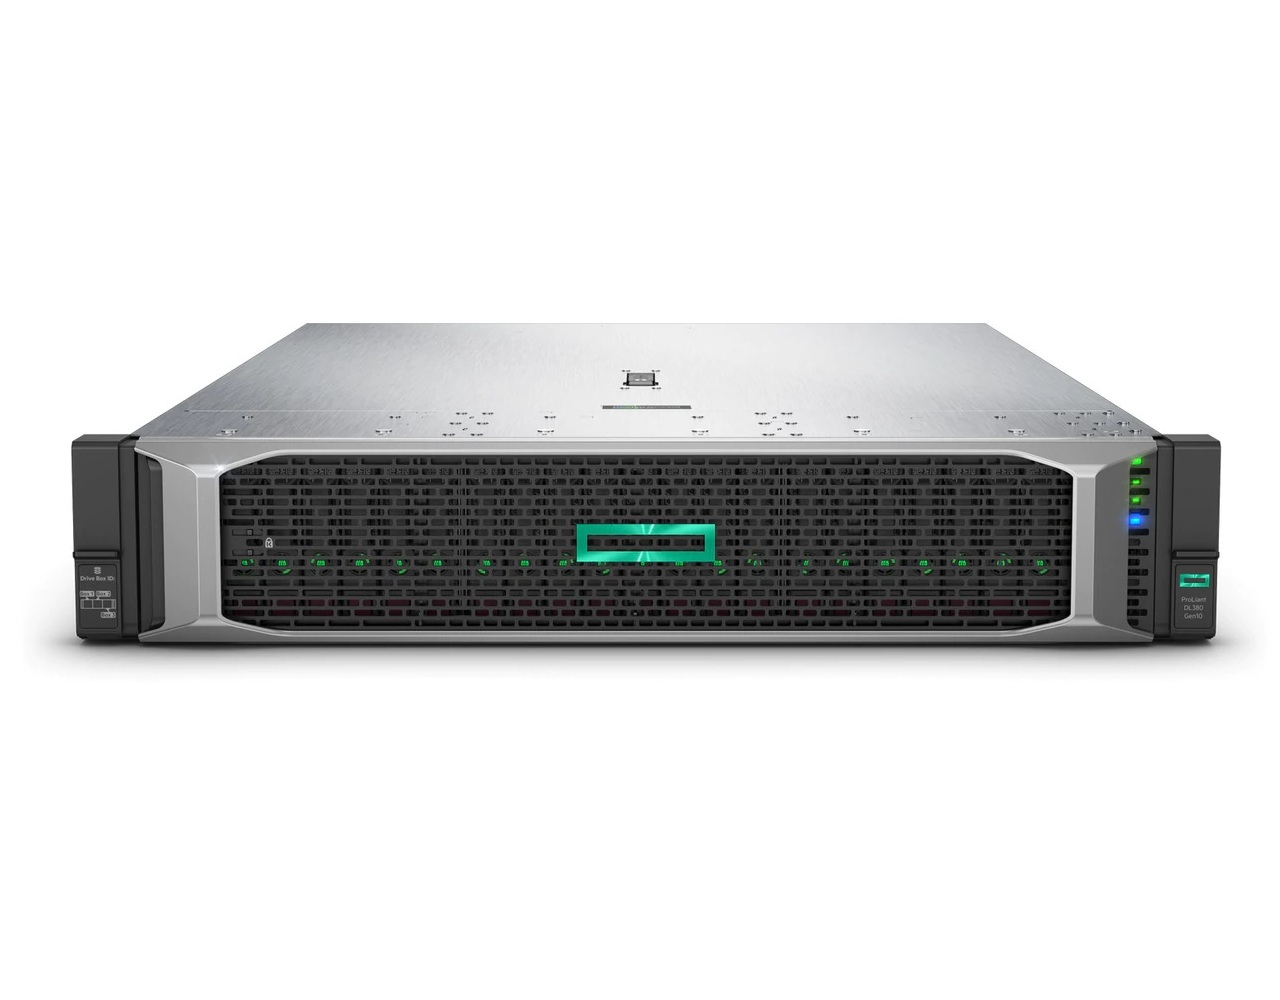 Hewlett Packard Enterprise ProLiant DL380 Gen10 4208 8SFF PERF WW server 2.1 GHz Intel Xeon Silver Rack (2U) 500 W